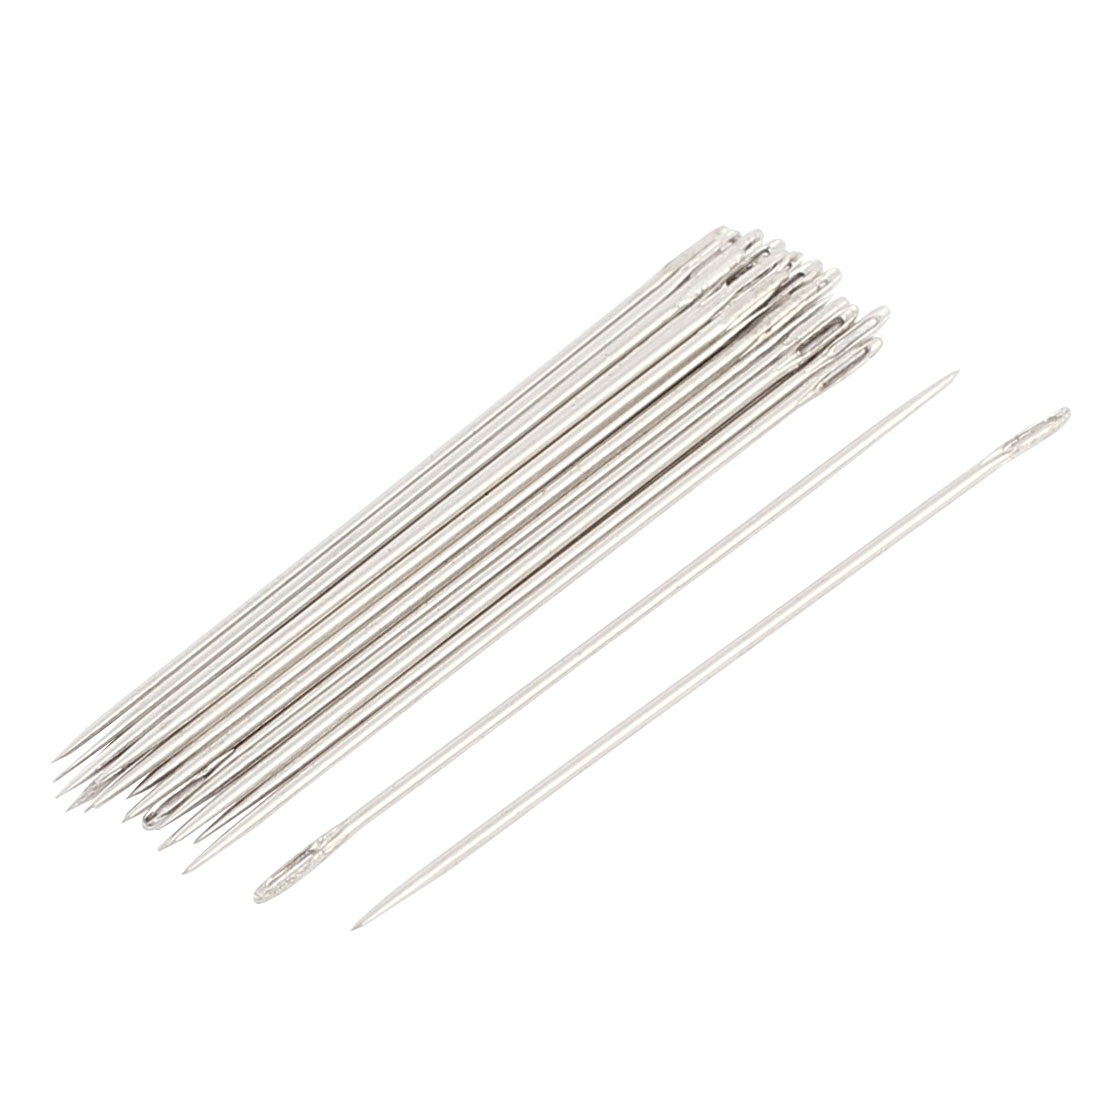 Domestic Sewing Machine Hand Embroidery Metal Threading Needles 40mm Long 25 Pcs